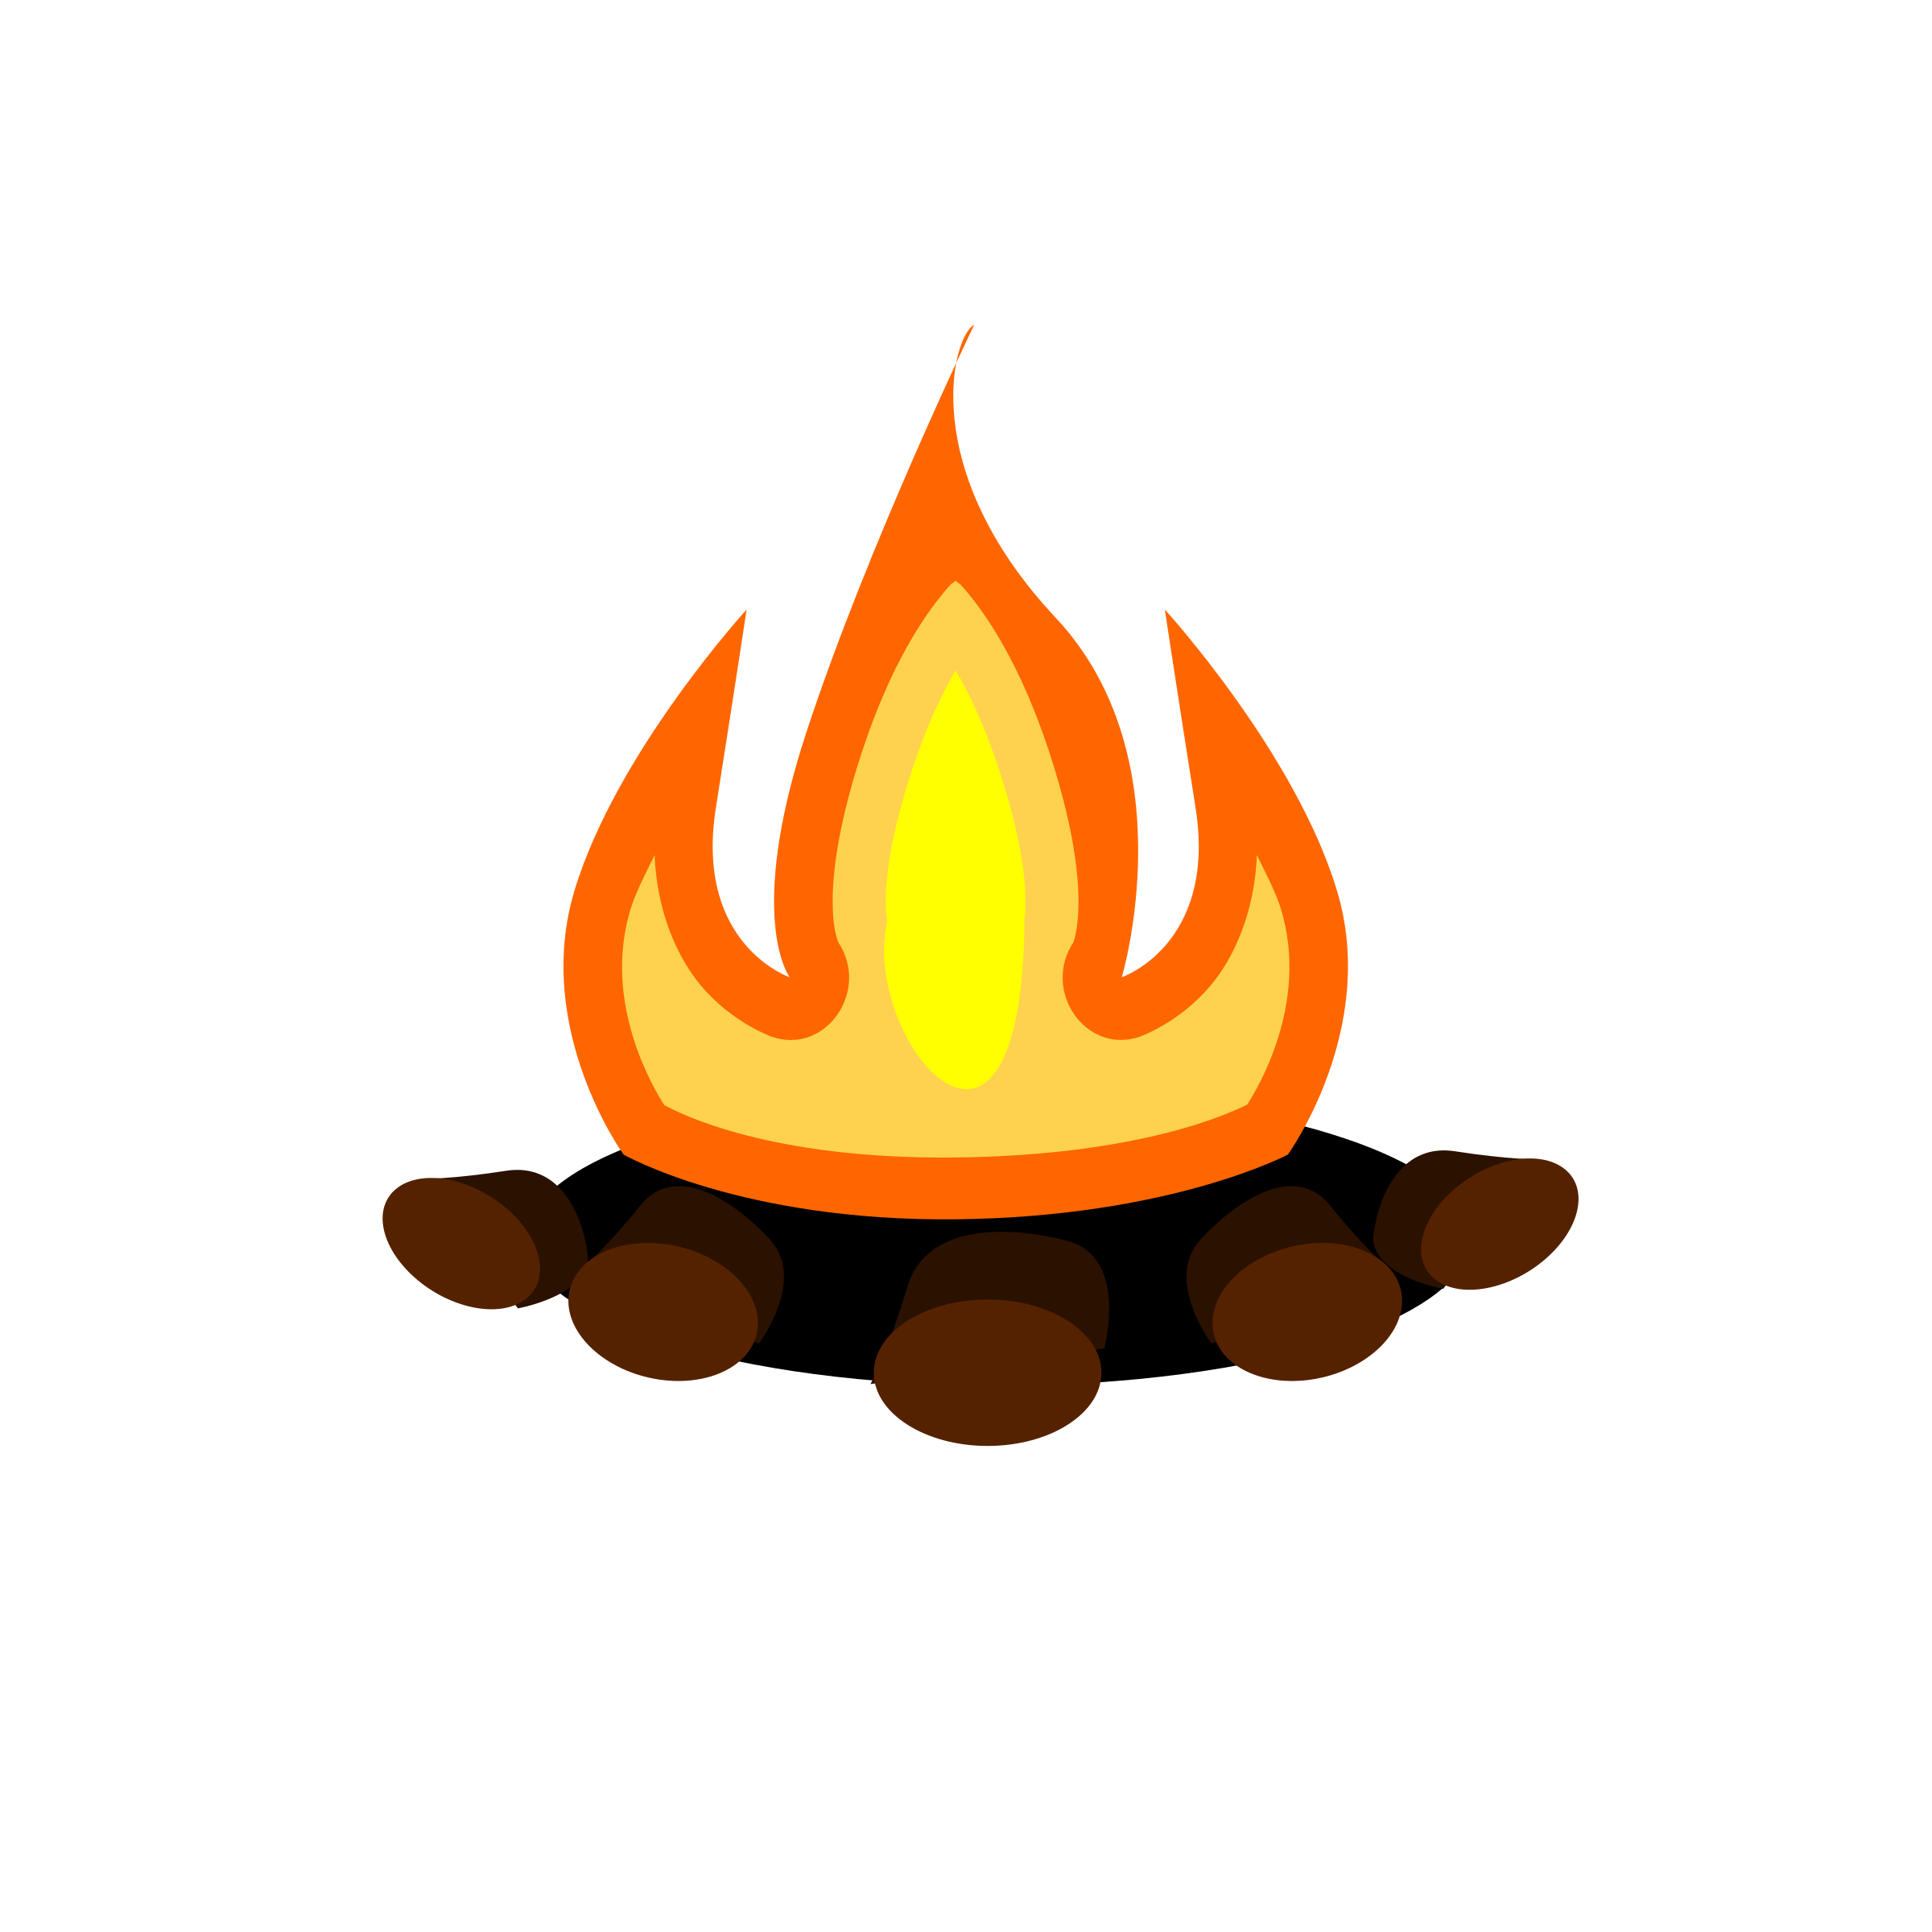 Smore bonfire halloween clip. Campfire clipart transparent background